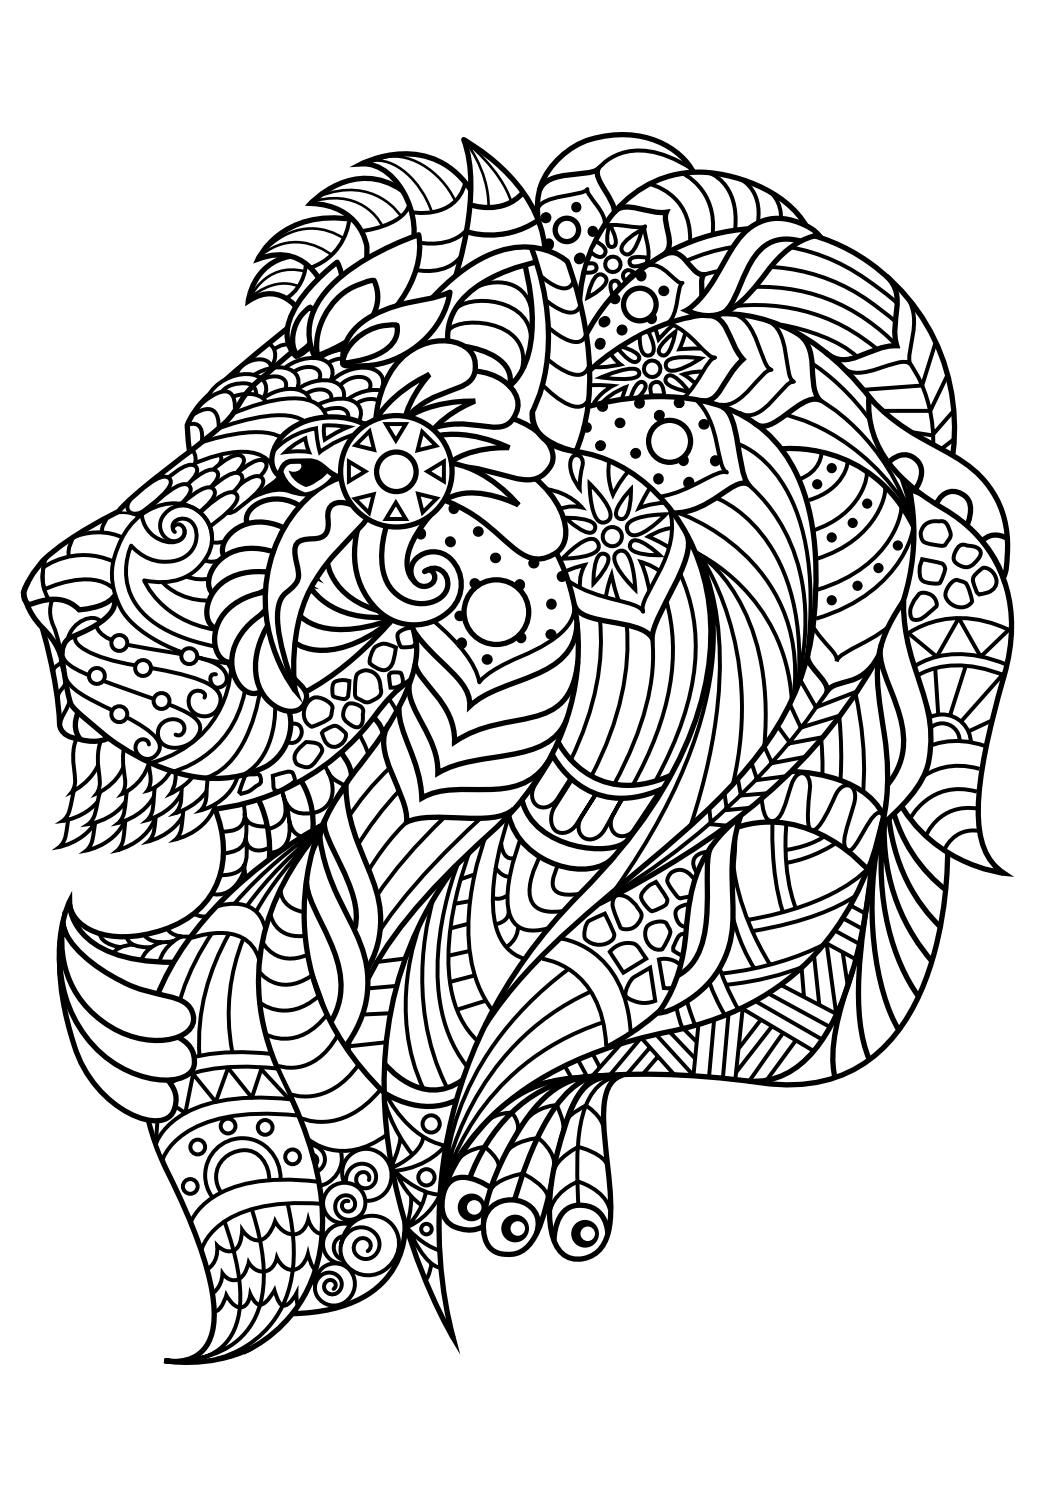 animal coloring pages pdf adult coloring coloring books and pdf. Black Bedroom Furniture Sets. Home Design Ideas